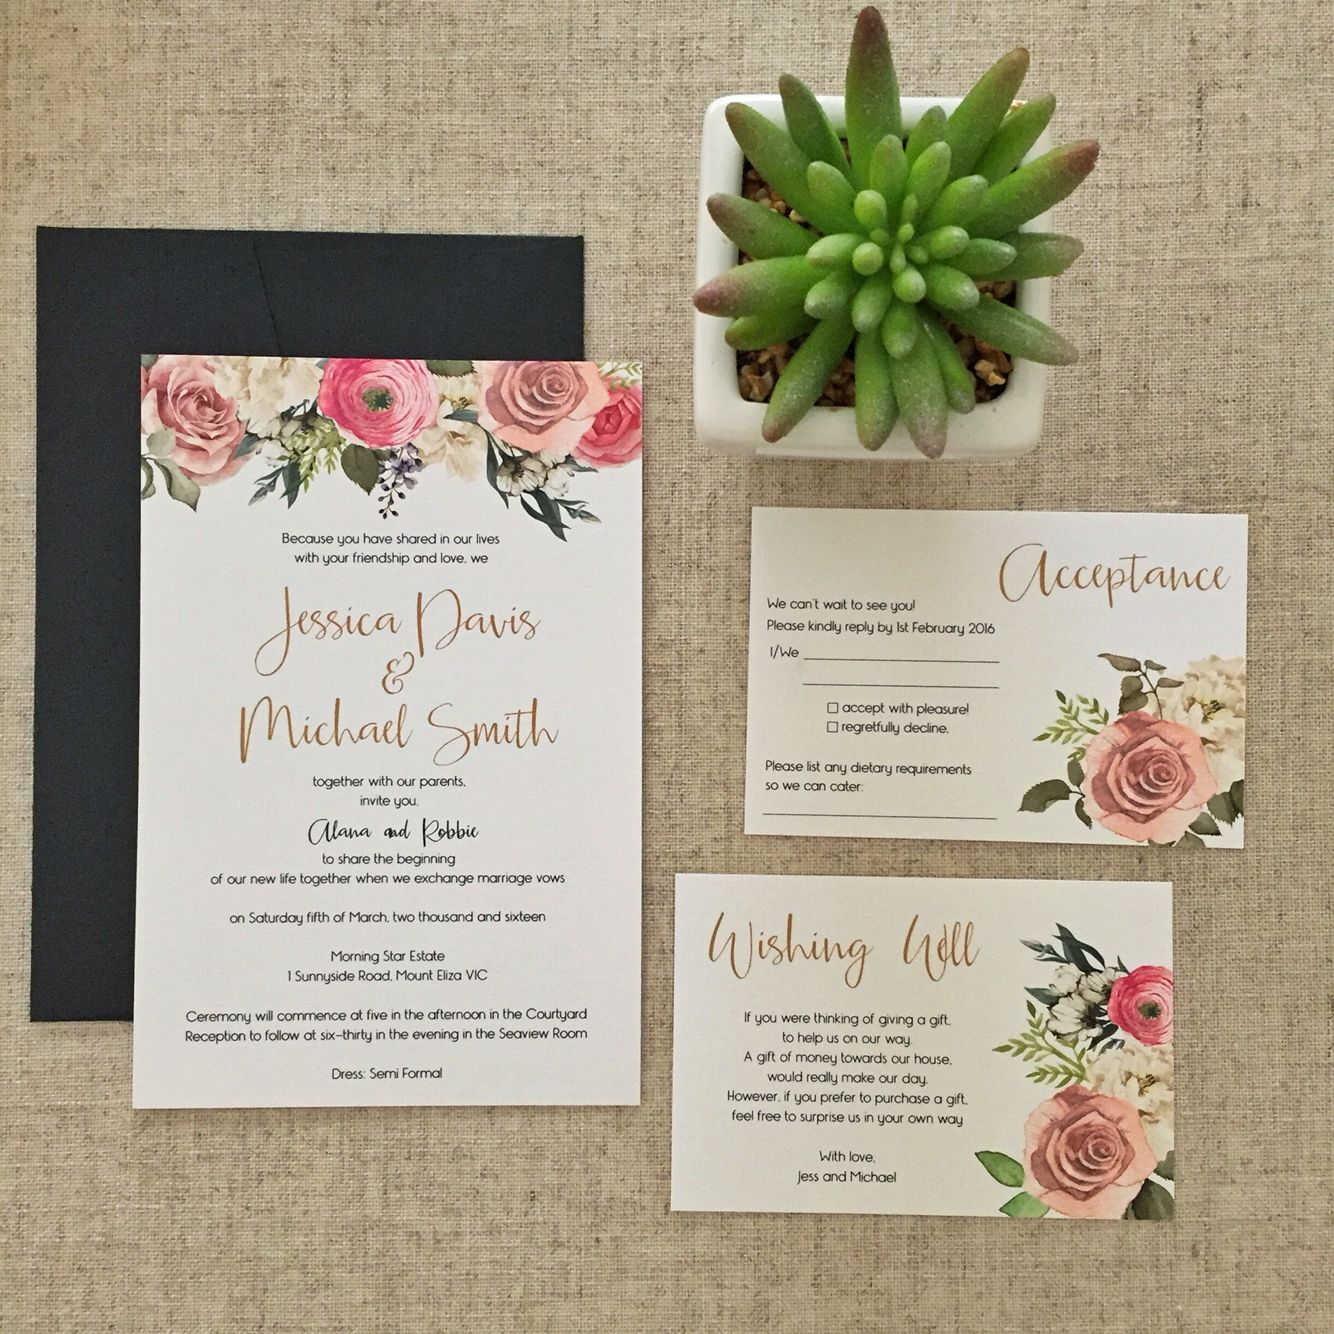 wedding reception directions card%0A Floral and gold invitation set with acceptance and wishing well card